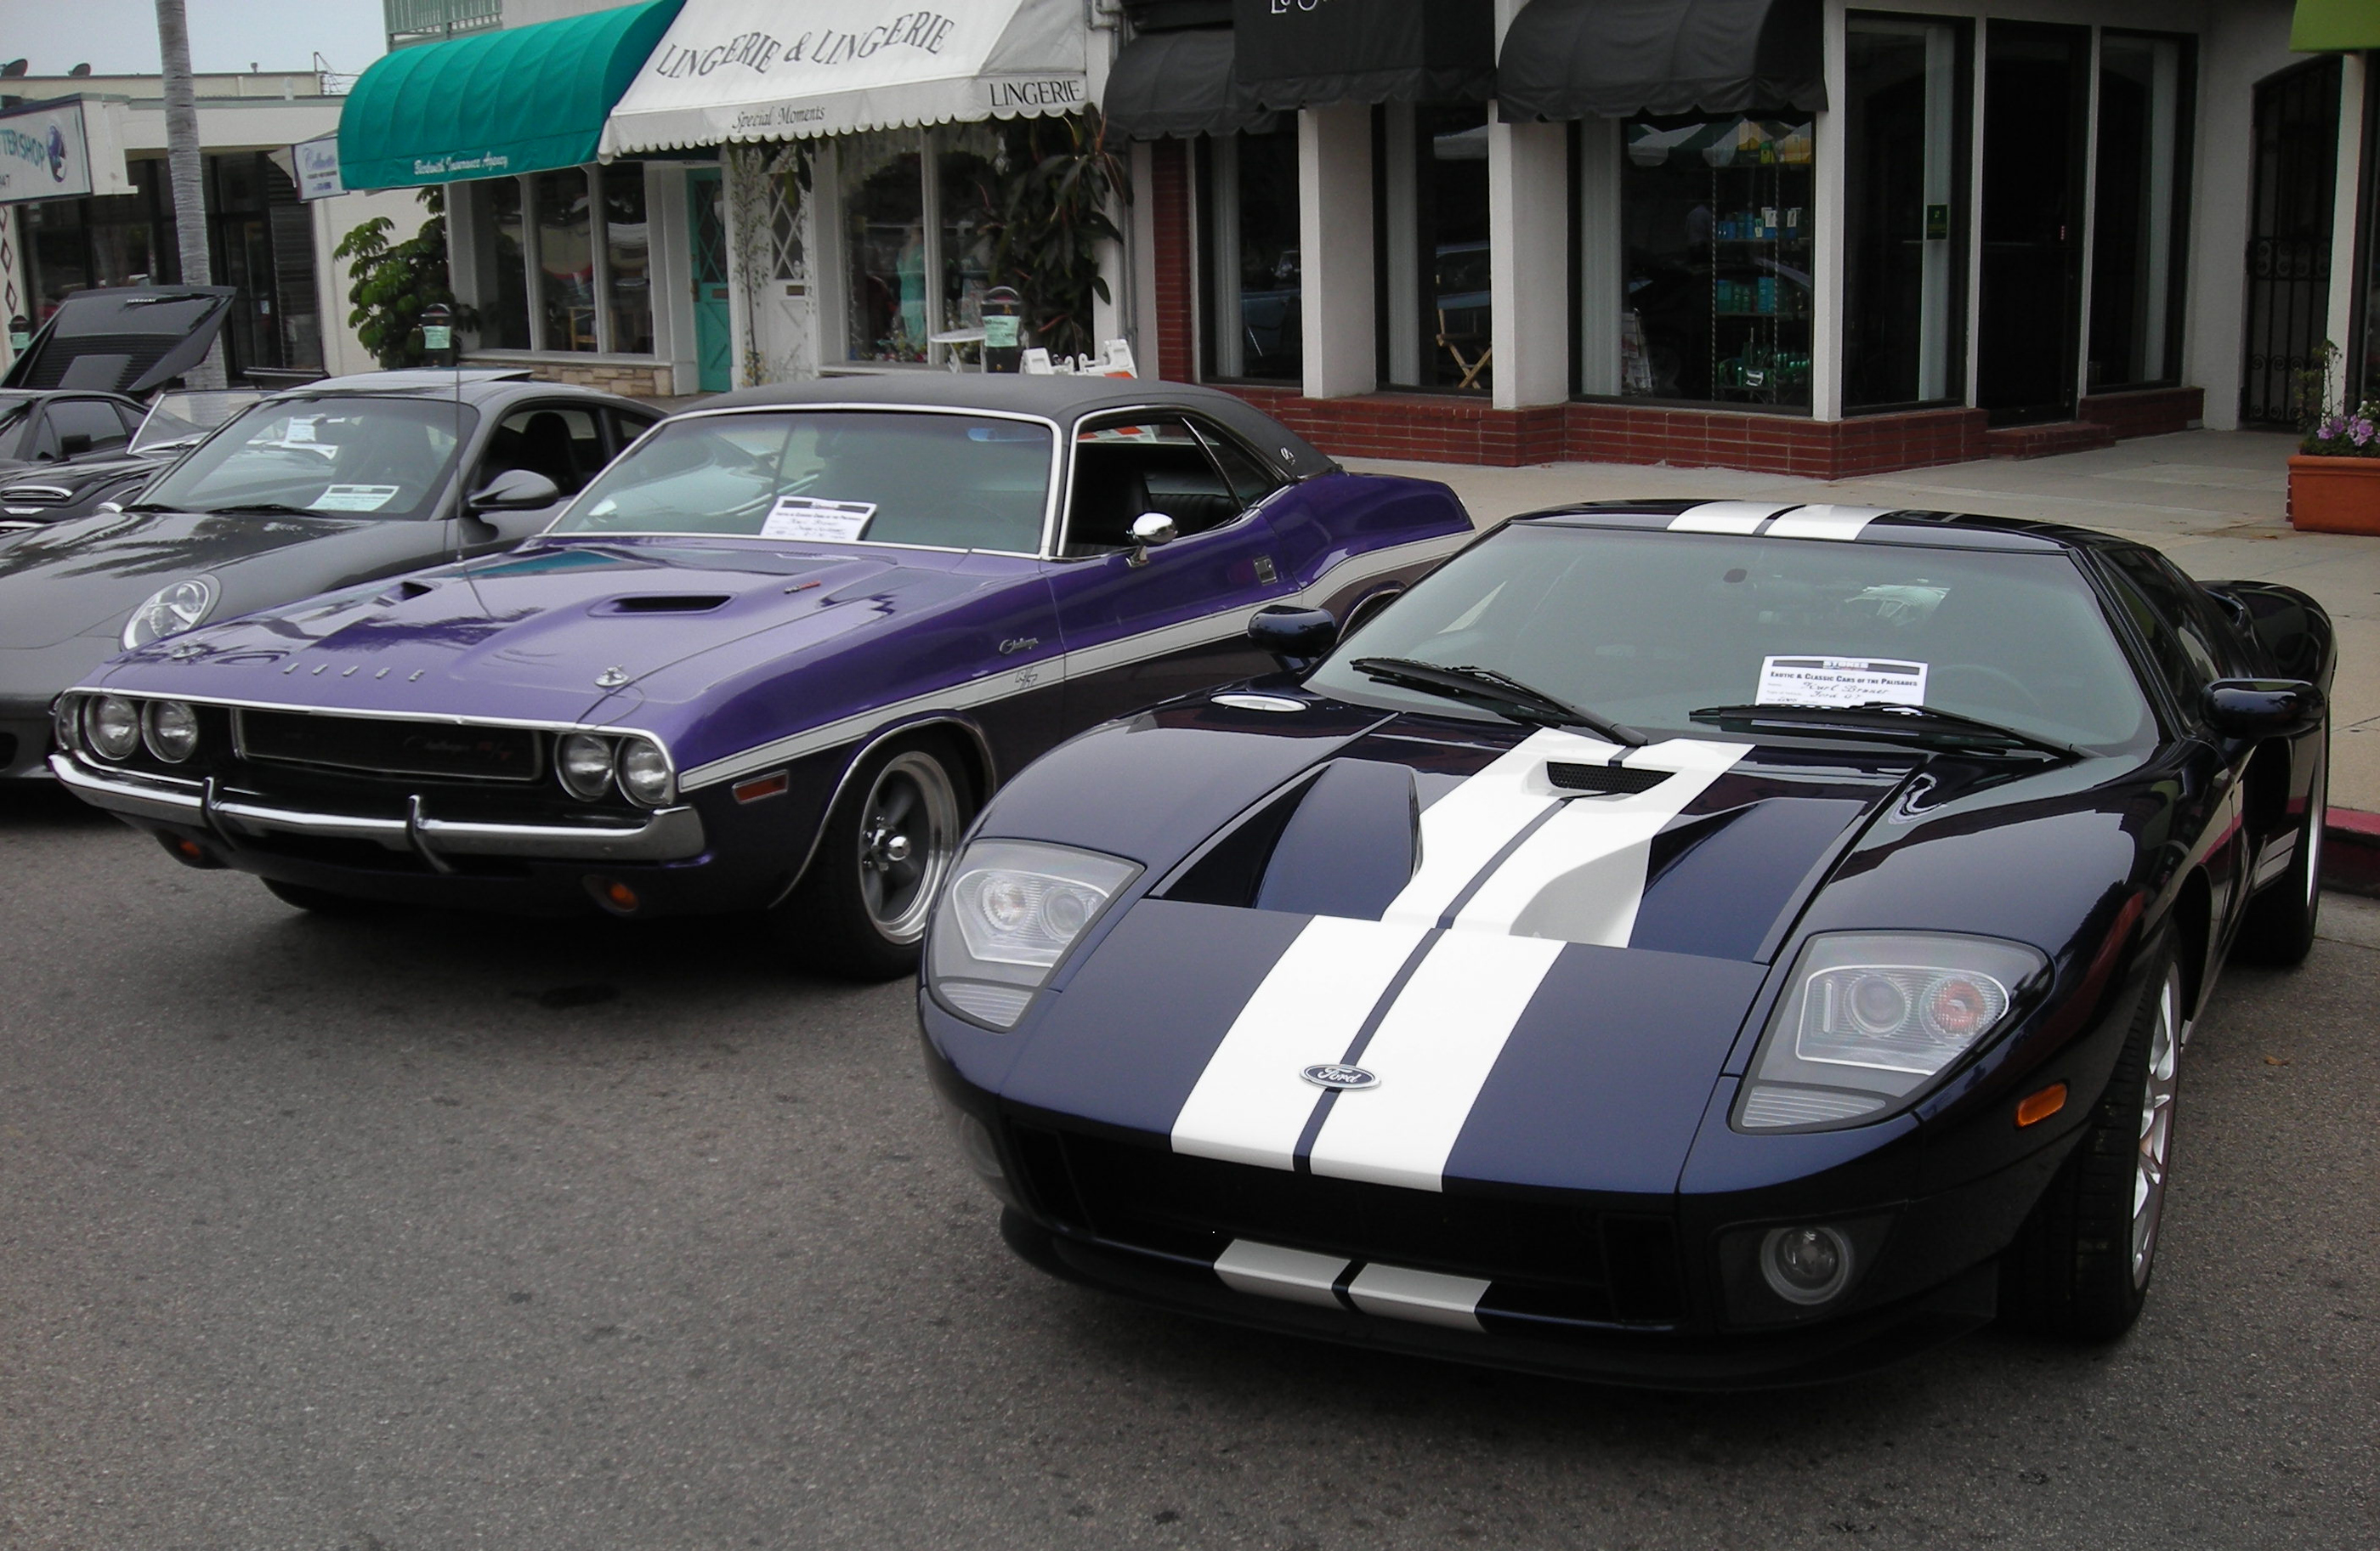 2005 Ford GT Long Term Pacific Palisades Car Show